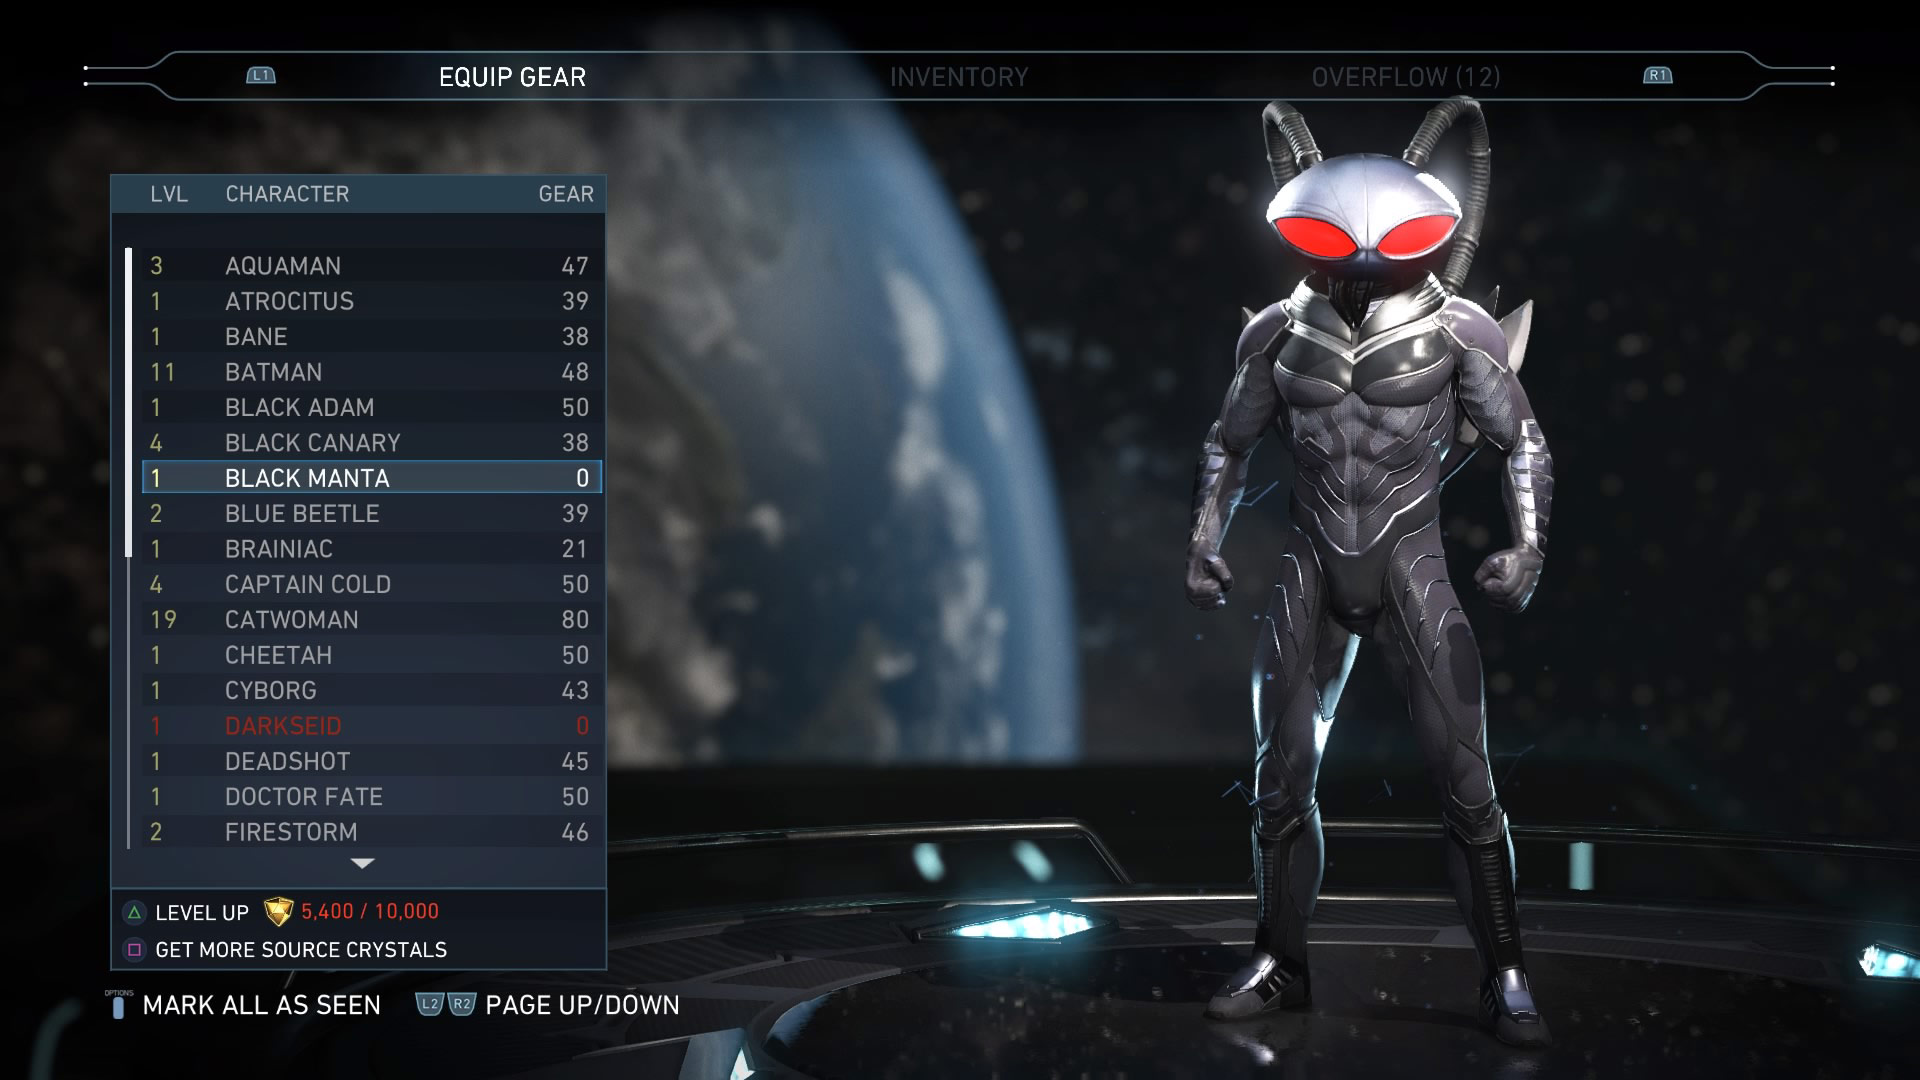 Black Manta screenshots in Injustice 2 1 out of 7 image gallery